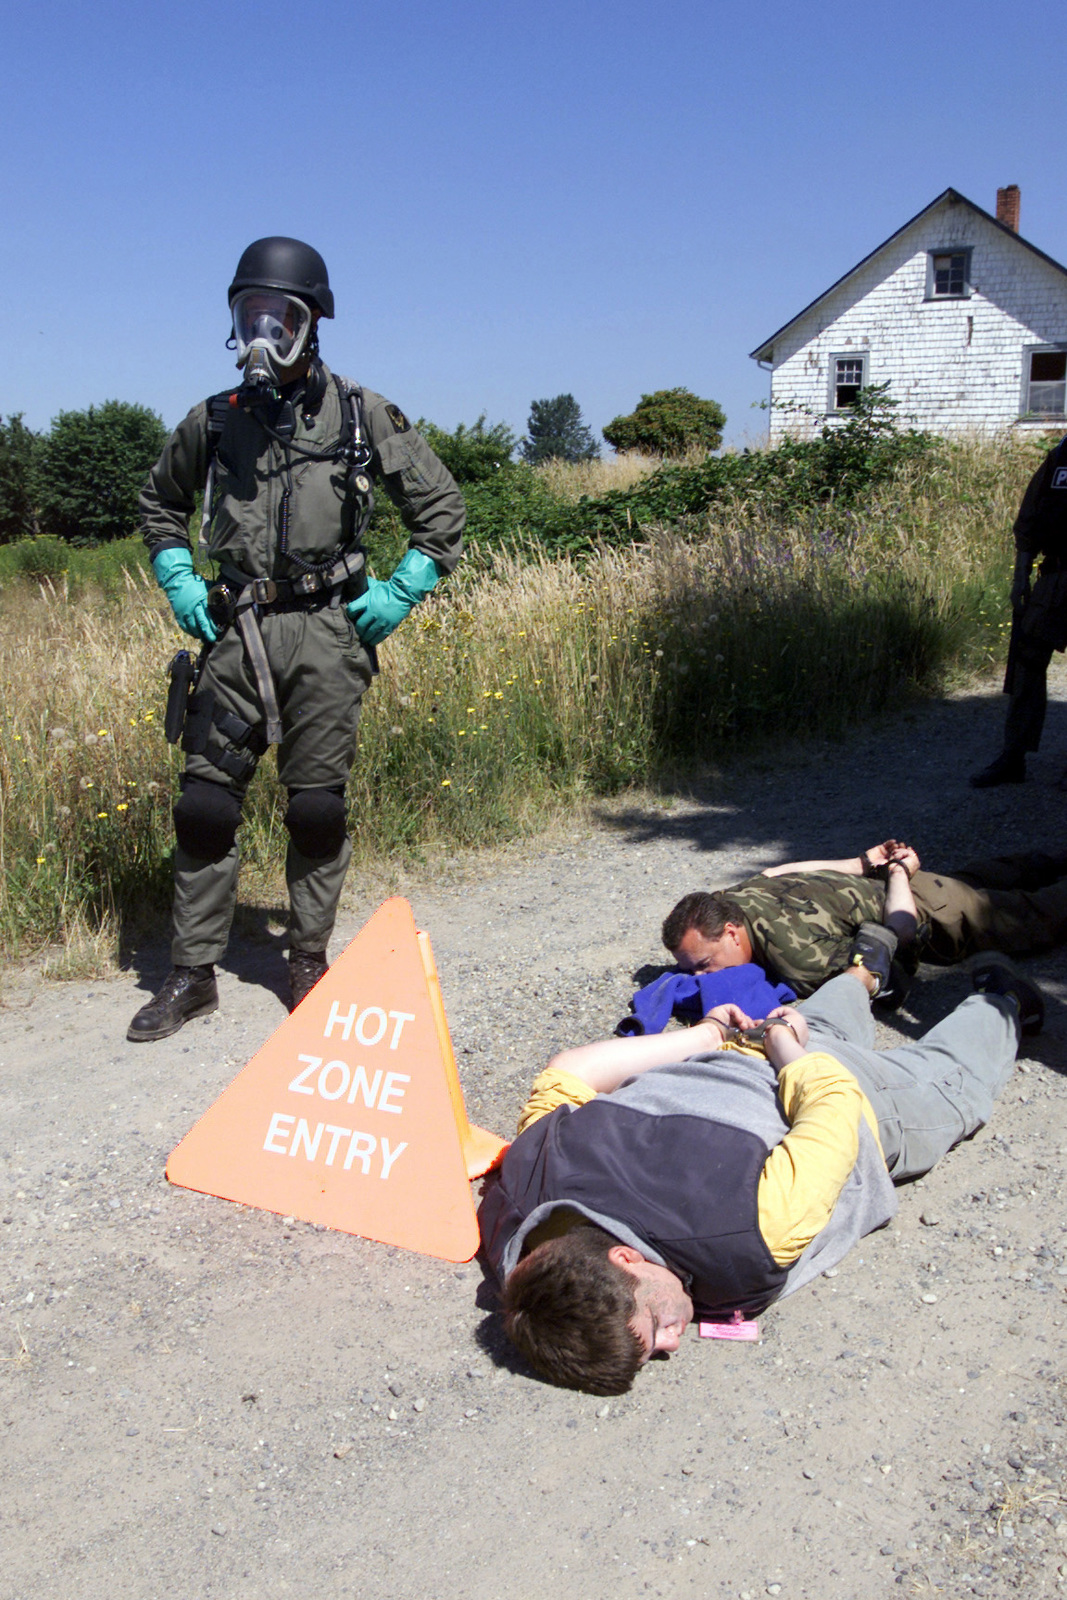 An Officer with the Pierce County, Washington (WA) Police Department, wearing Nuclear, Biological, Chemical (NBC) gear stands guard over two suspected terrorists during a simulated chemical weapons exercise conducted at McChord Air Force Base (AFB), Fort Lewis, WA, during Exercise SEAHAWK 2002. Seahawk combines active duty and reserve components from the US Air Force (USAF), US Navy (USN), US Coast Guard (USCG), US Public Health Service, Royal Canadian Armed Forces (RCAF), Federal Bureau of Investigation (FBI), Federal Emergence Management Association (FEMA) and multiple civilian first responder agencies in coordinated responses to simulated terrorist acts inside the Continental United...